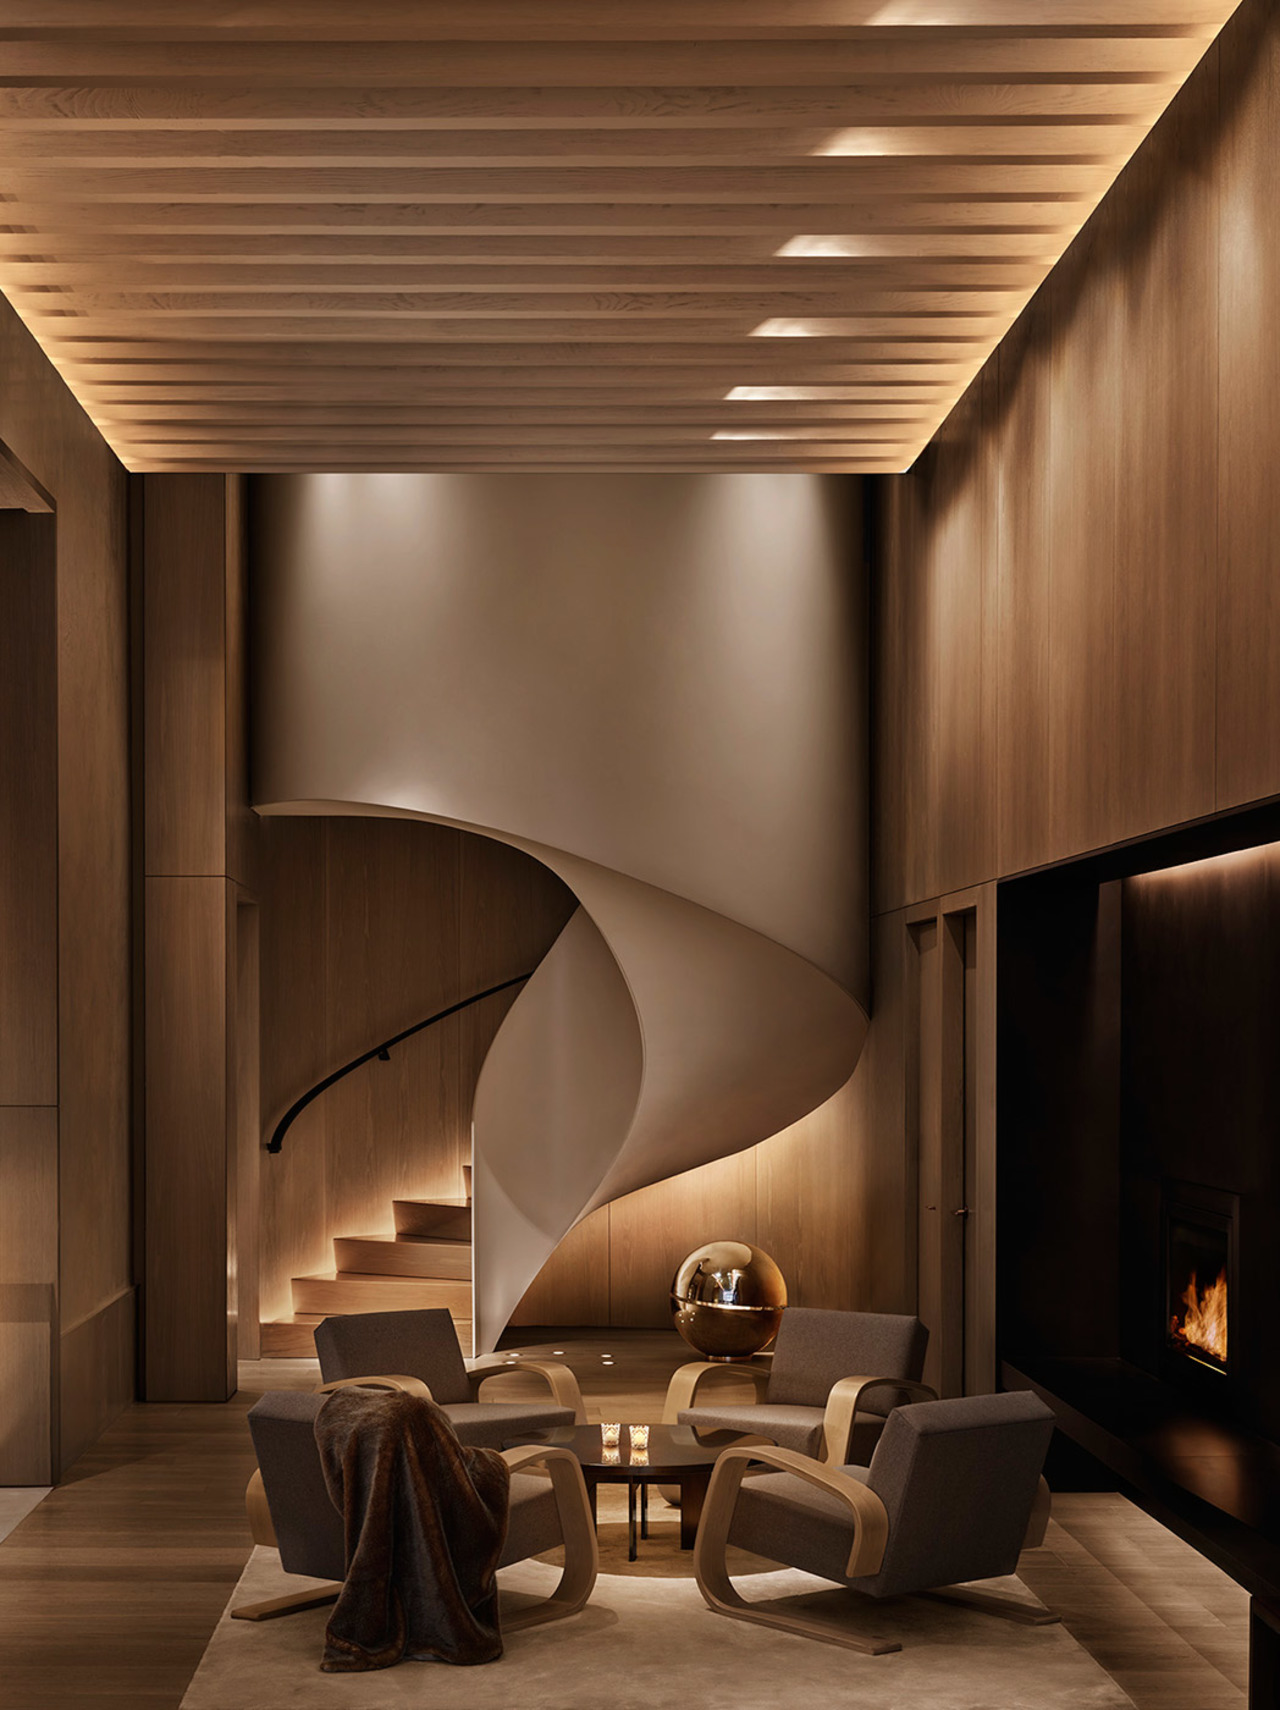 NYC-EDITION-Lobby-Staircase-Seating-1048x1400.jpg